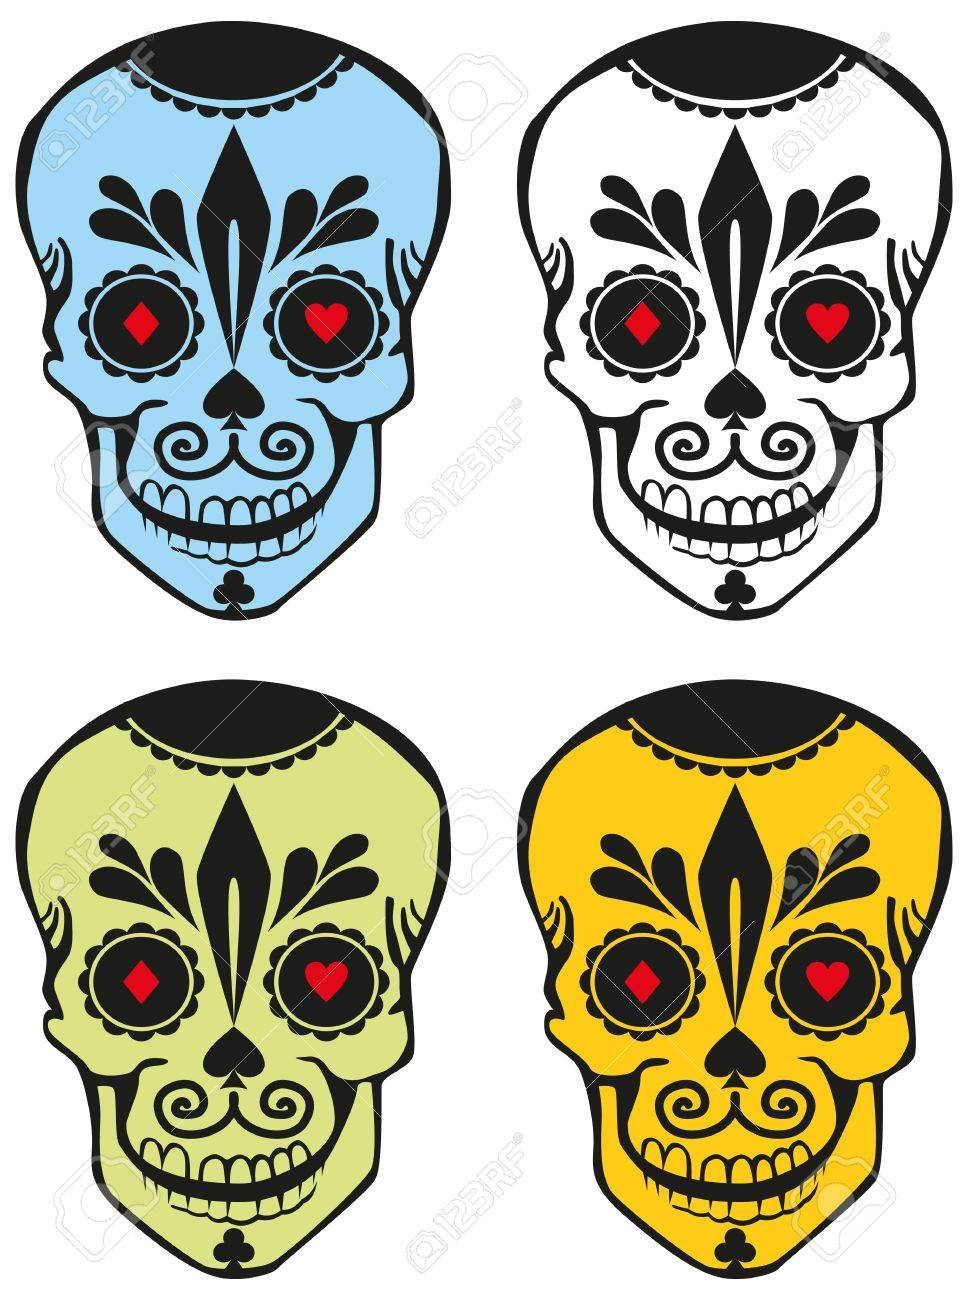 - Four Differently Colored Sugar Skulls With The Symbols Of Playing